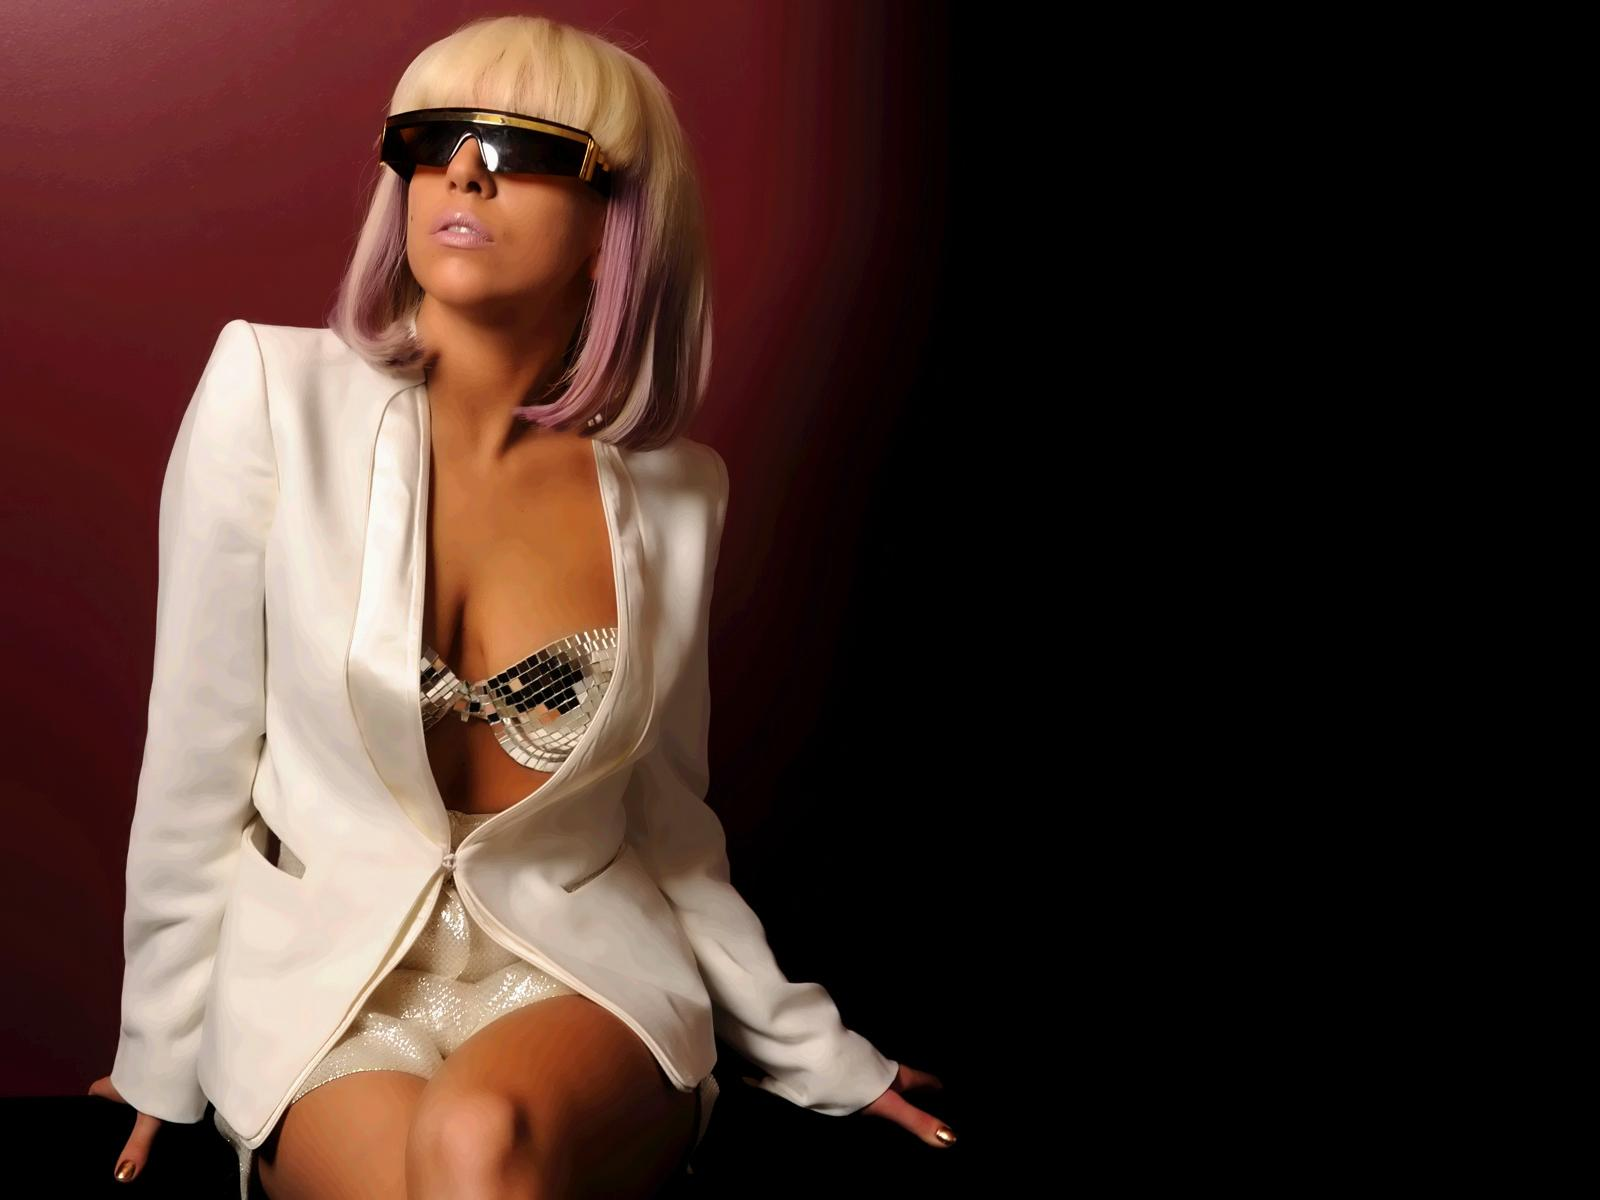 http://2.bp.blogspot.com/-iBCoGIfLCvo/Ta_NzhoayFI/AAAAAAAAEqI/DO3yjdpyk60/s1600/Lady-Gaga-Wallpapers.jpg